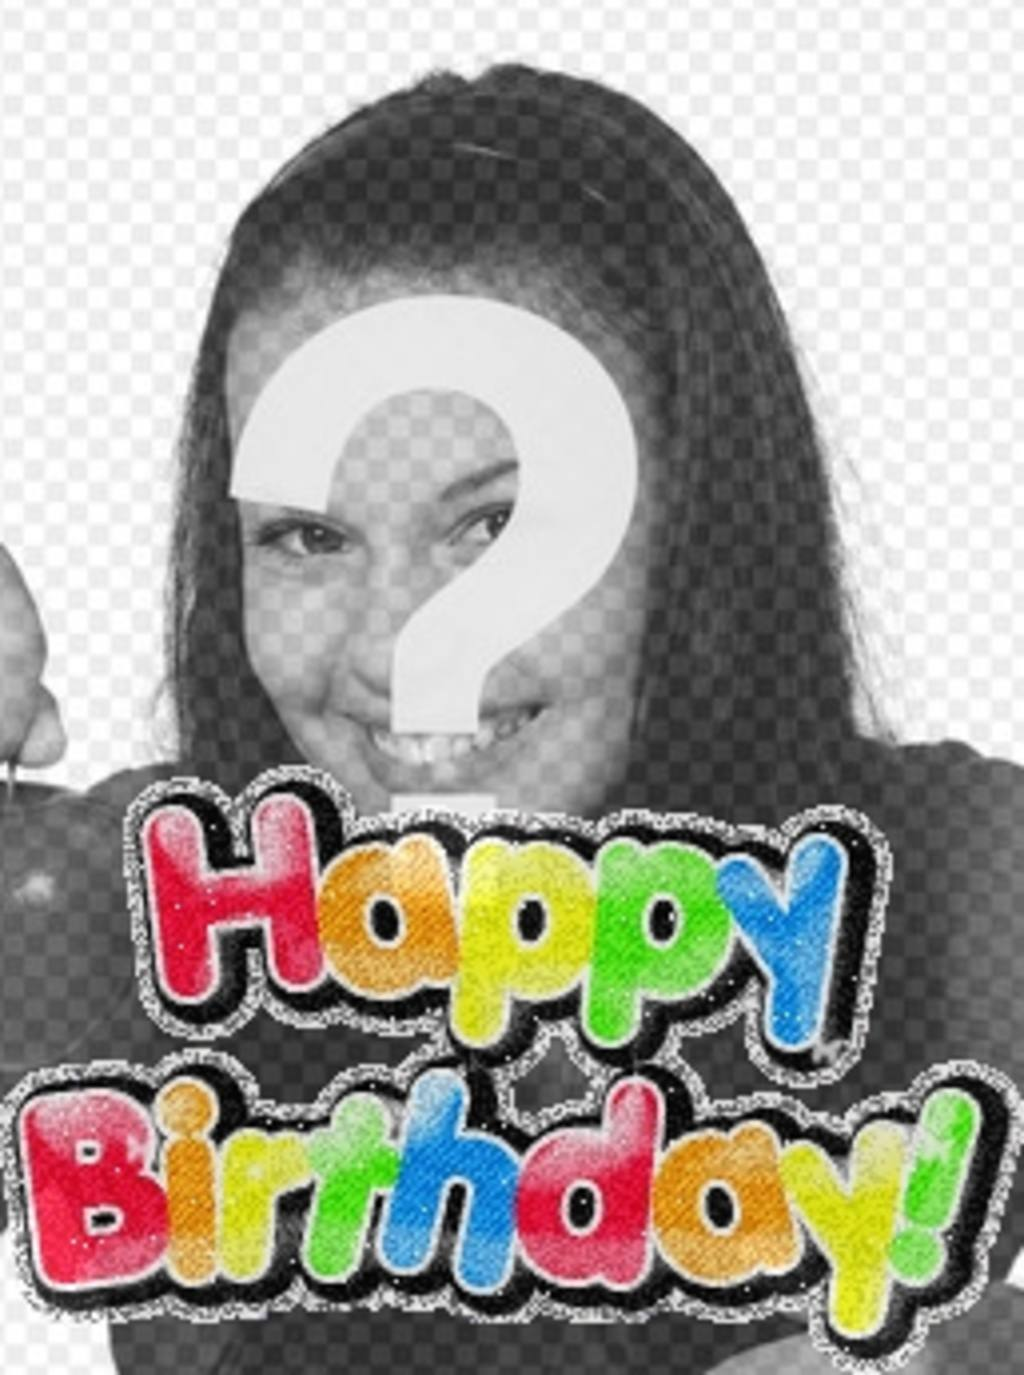 Photomontage to make your own birthday card, you can personalize with a photo. The template for this photomontage, text is a colorful, happy birthday, bright lively. To wish a happy birthday